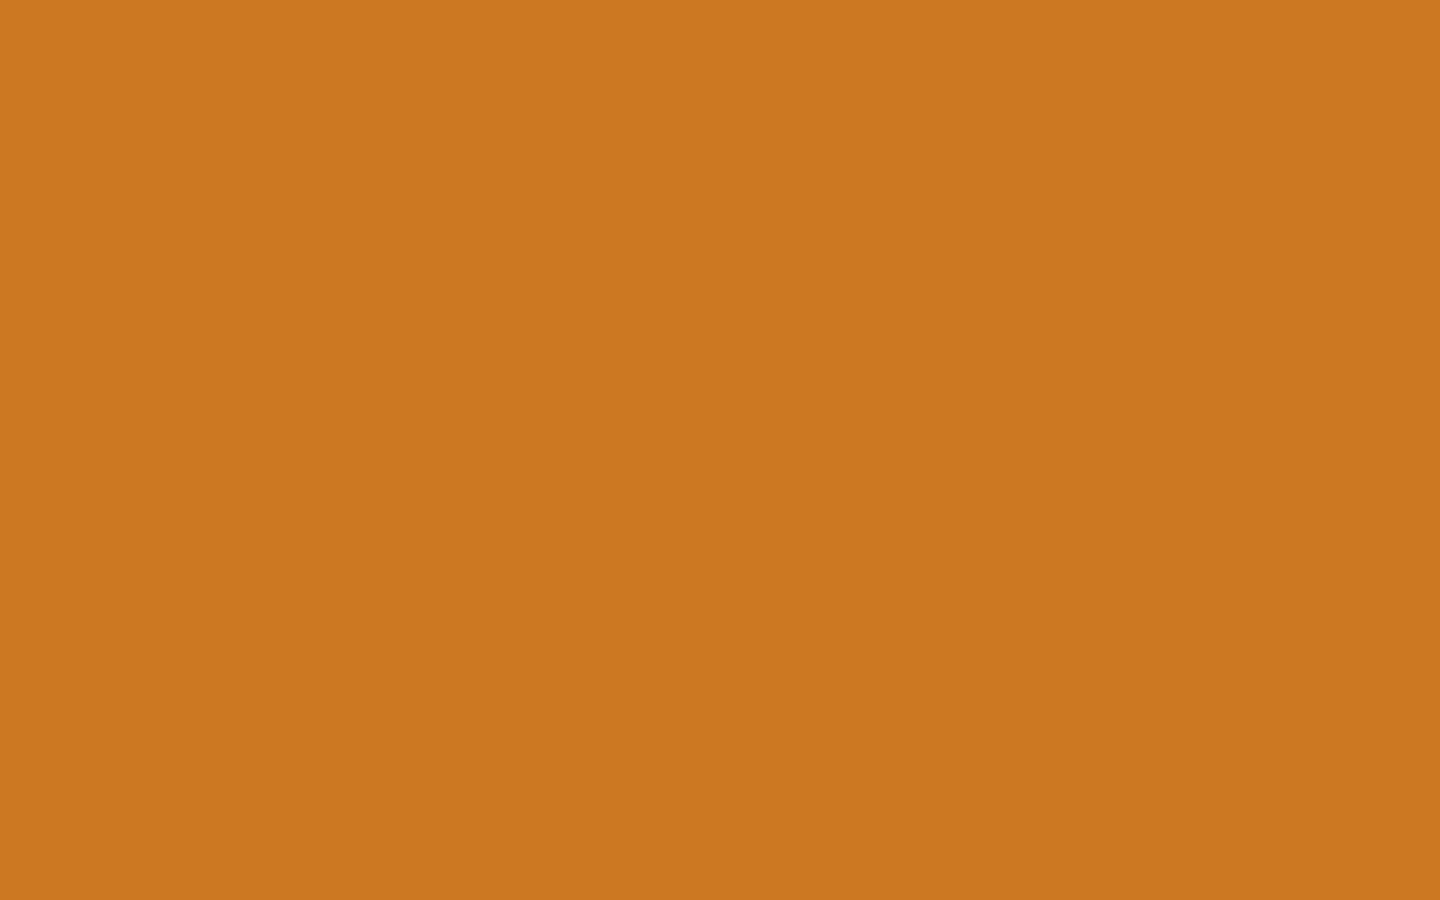 1440x900 Ochre Solid Color Background